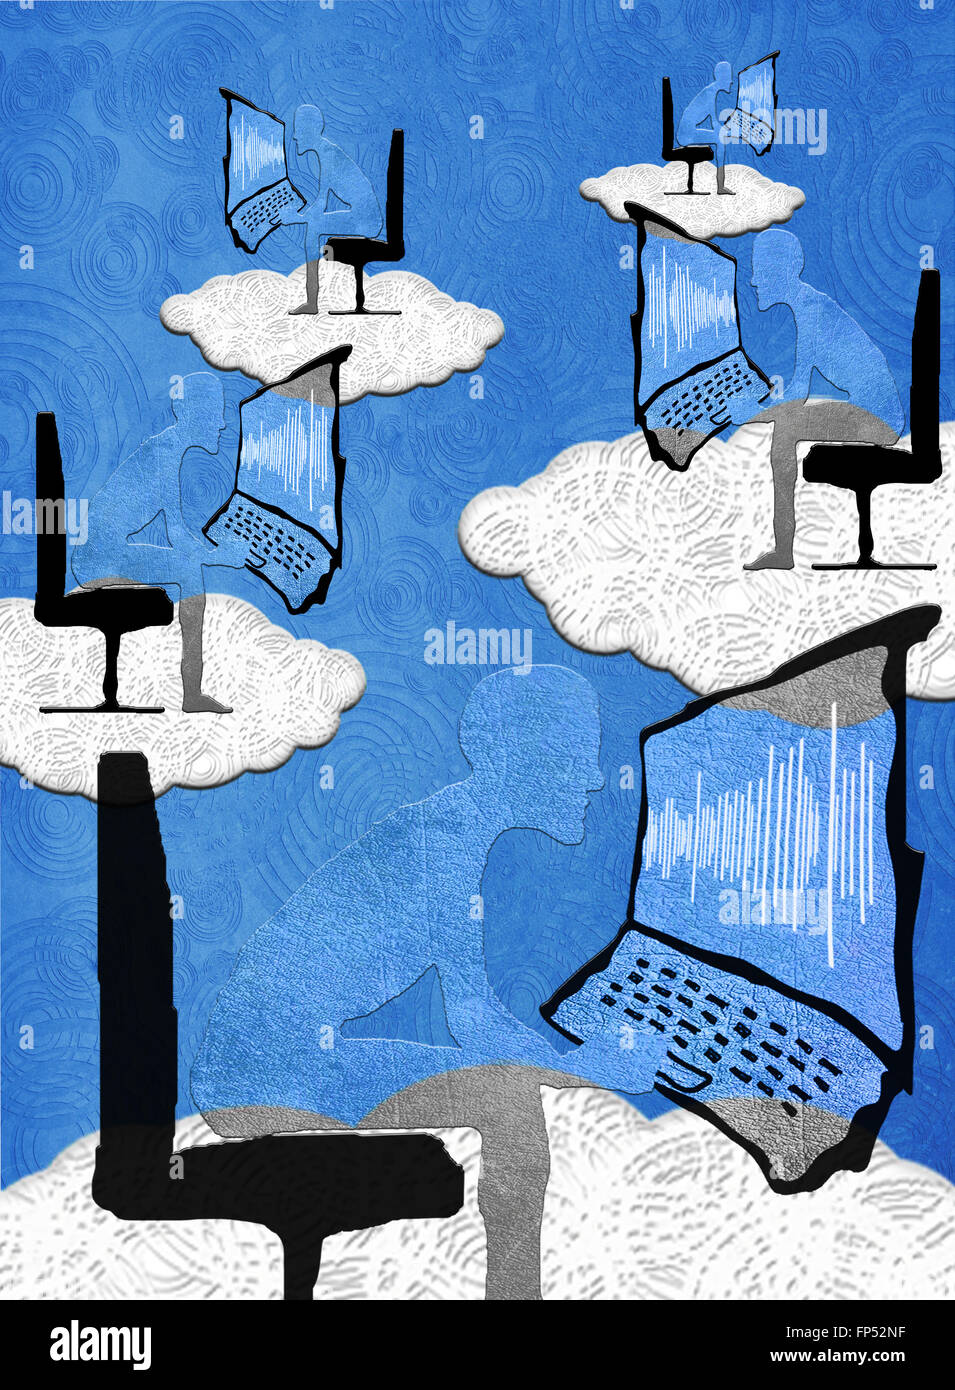 Cloud computing concept illustration numérique Banque D'Images